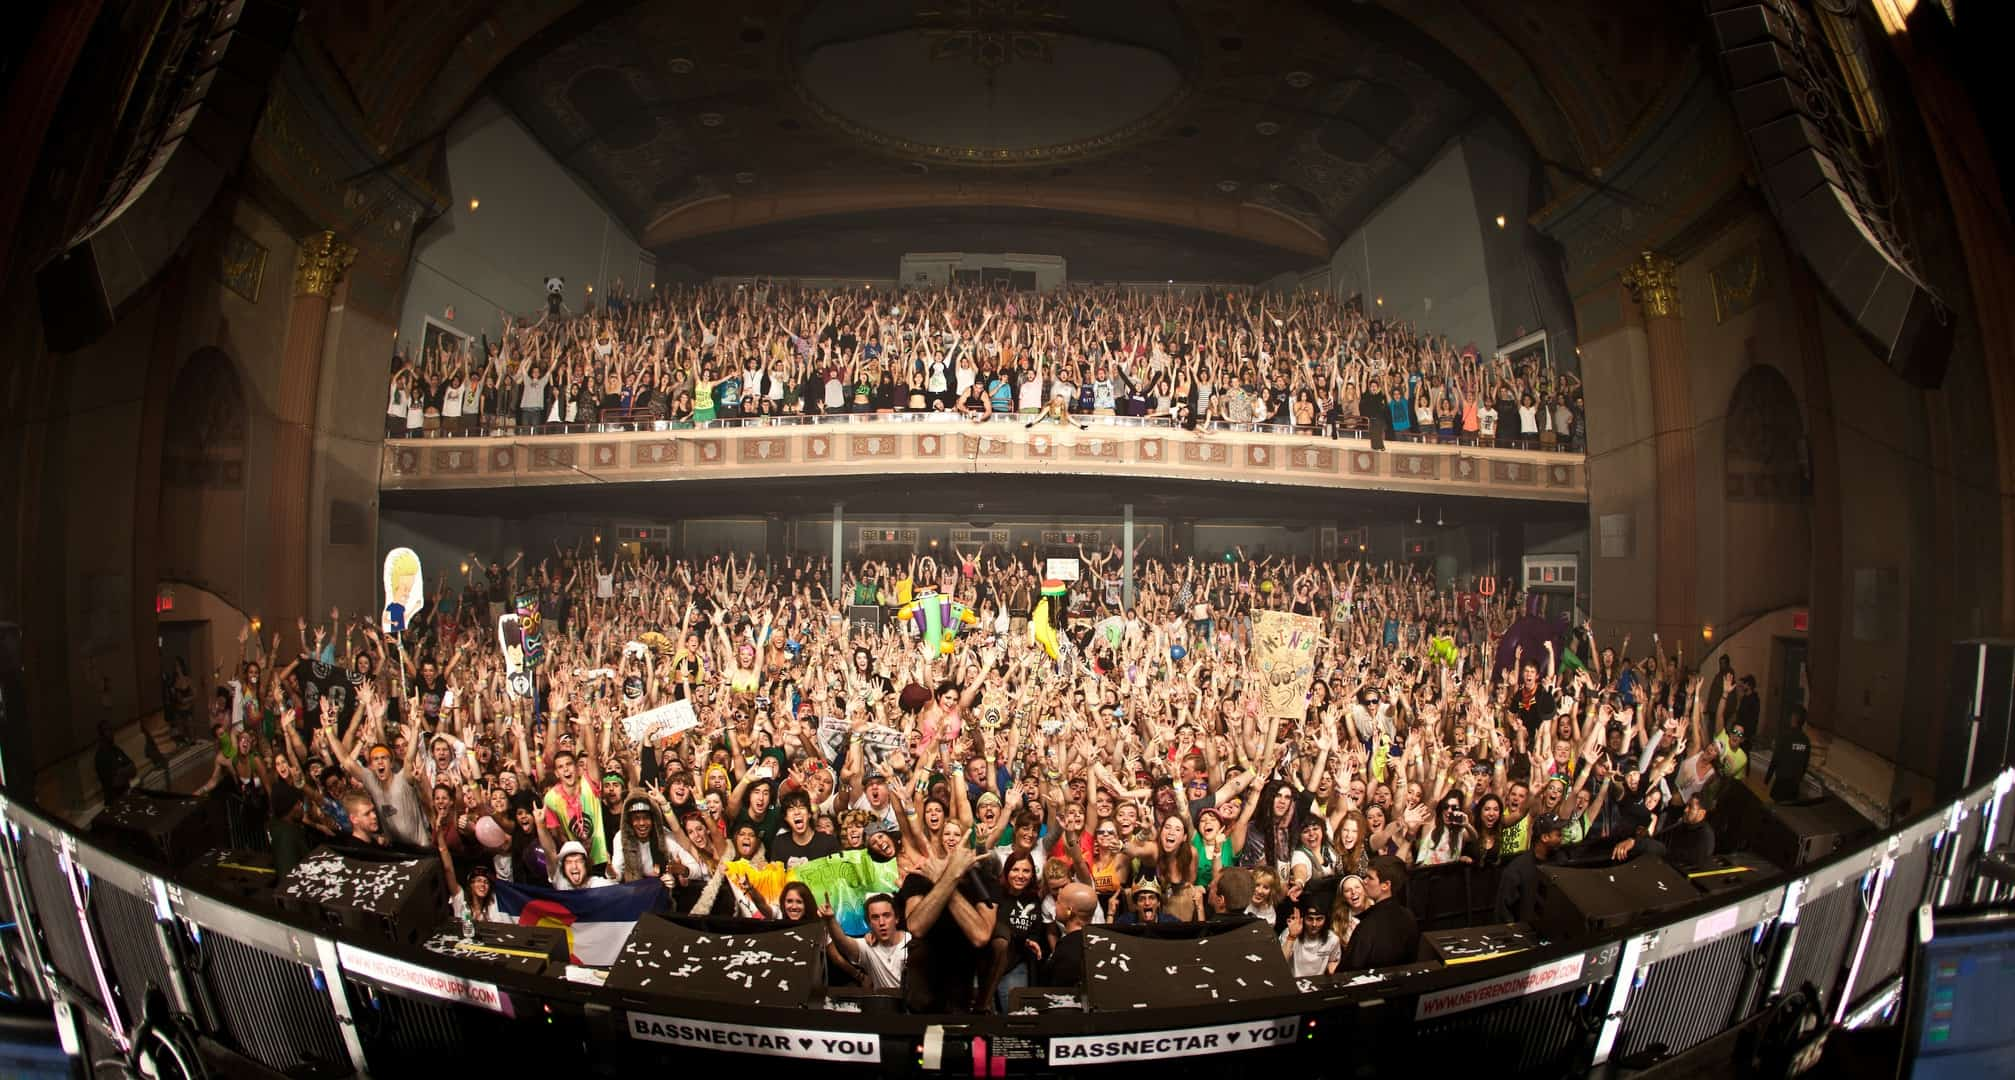 Venue Photos - - The Wellmont Theater